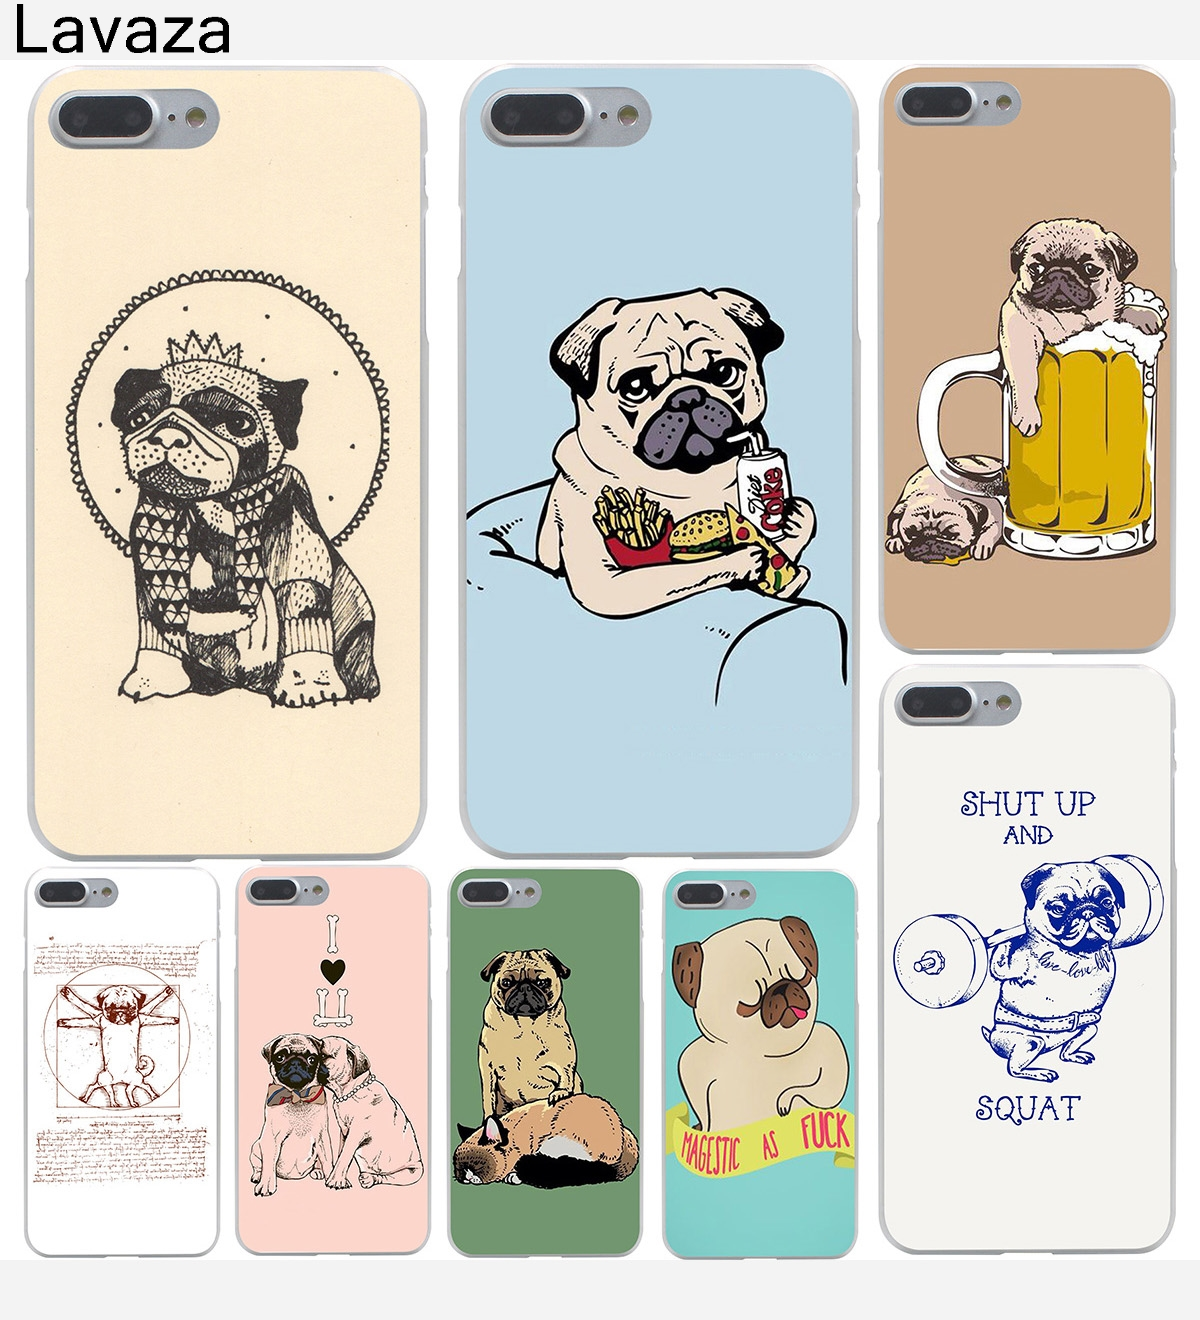 Lavaza Pug Dog Hard Phone Case For Apple Iphone X 10 7 6 6s 8 Plus Tpu 360 Full Cover 7g Softshell 5 5s Se 5c 4 4s Coque Shell